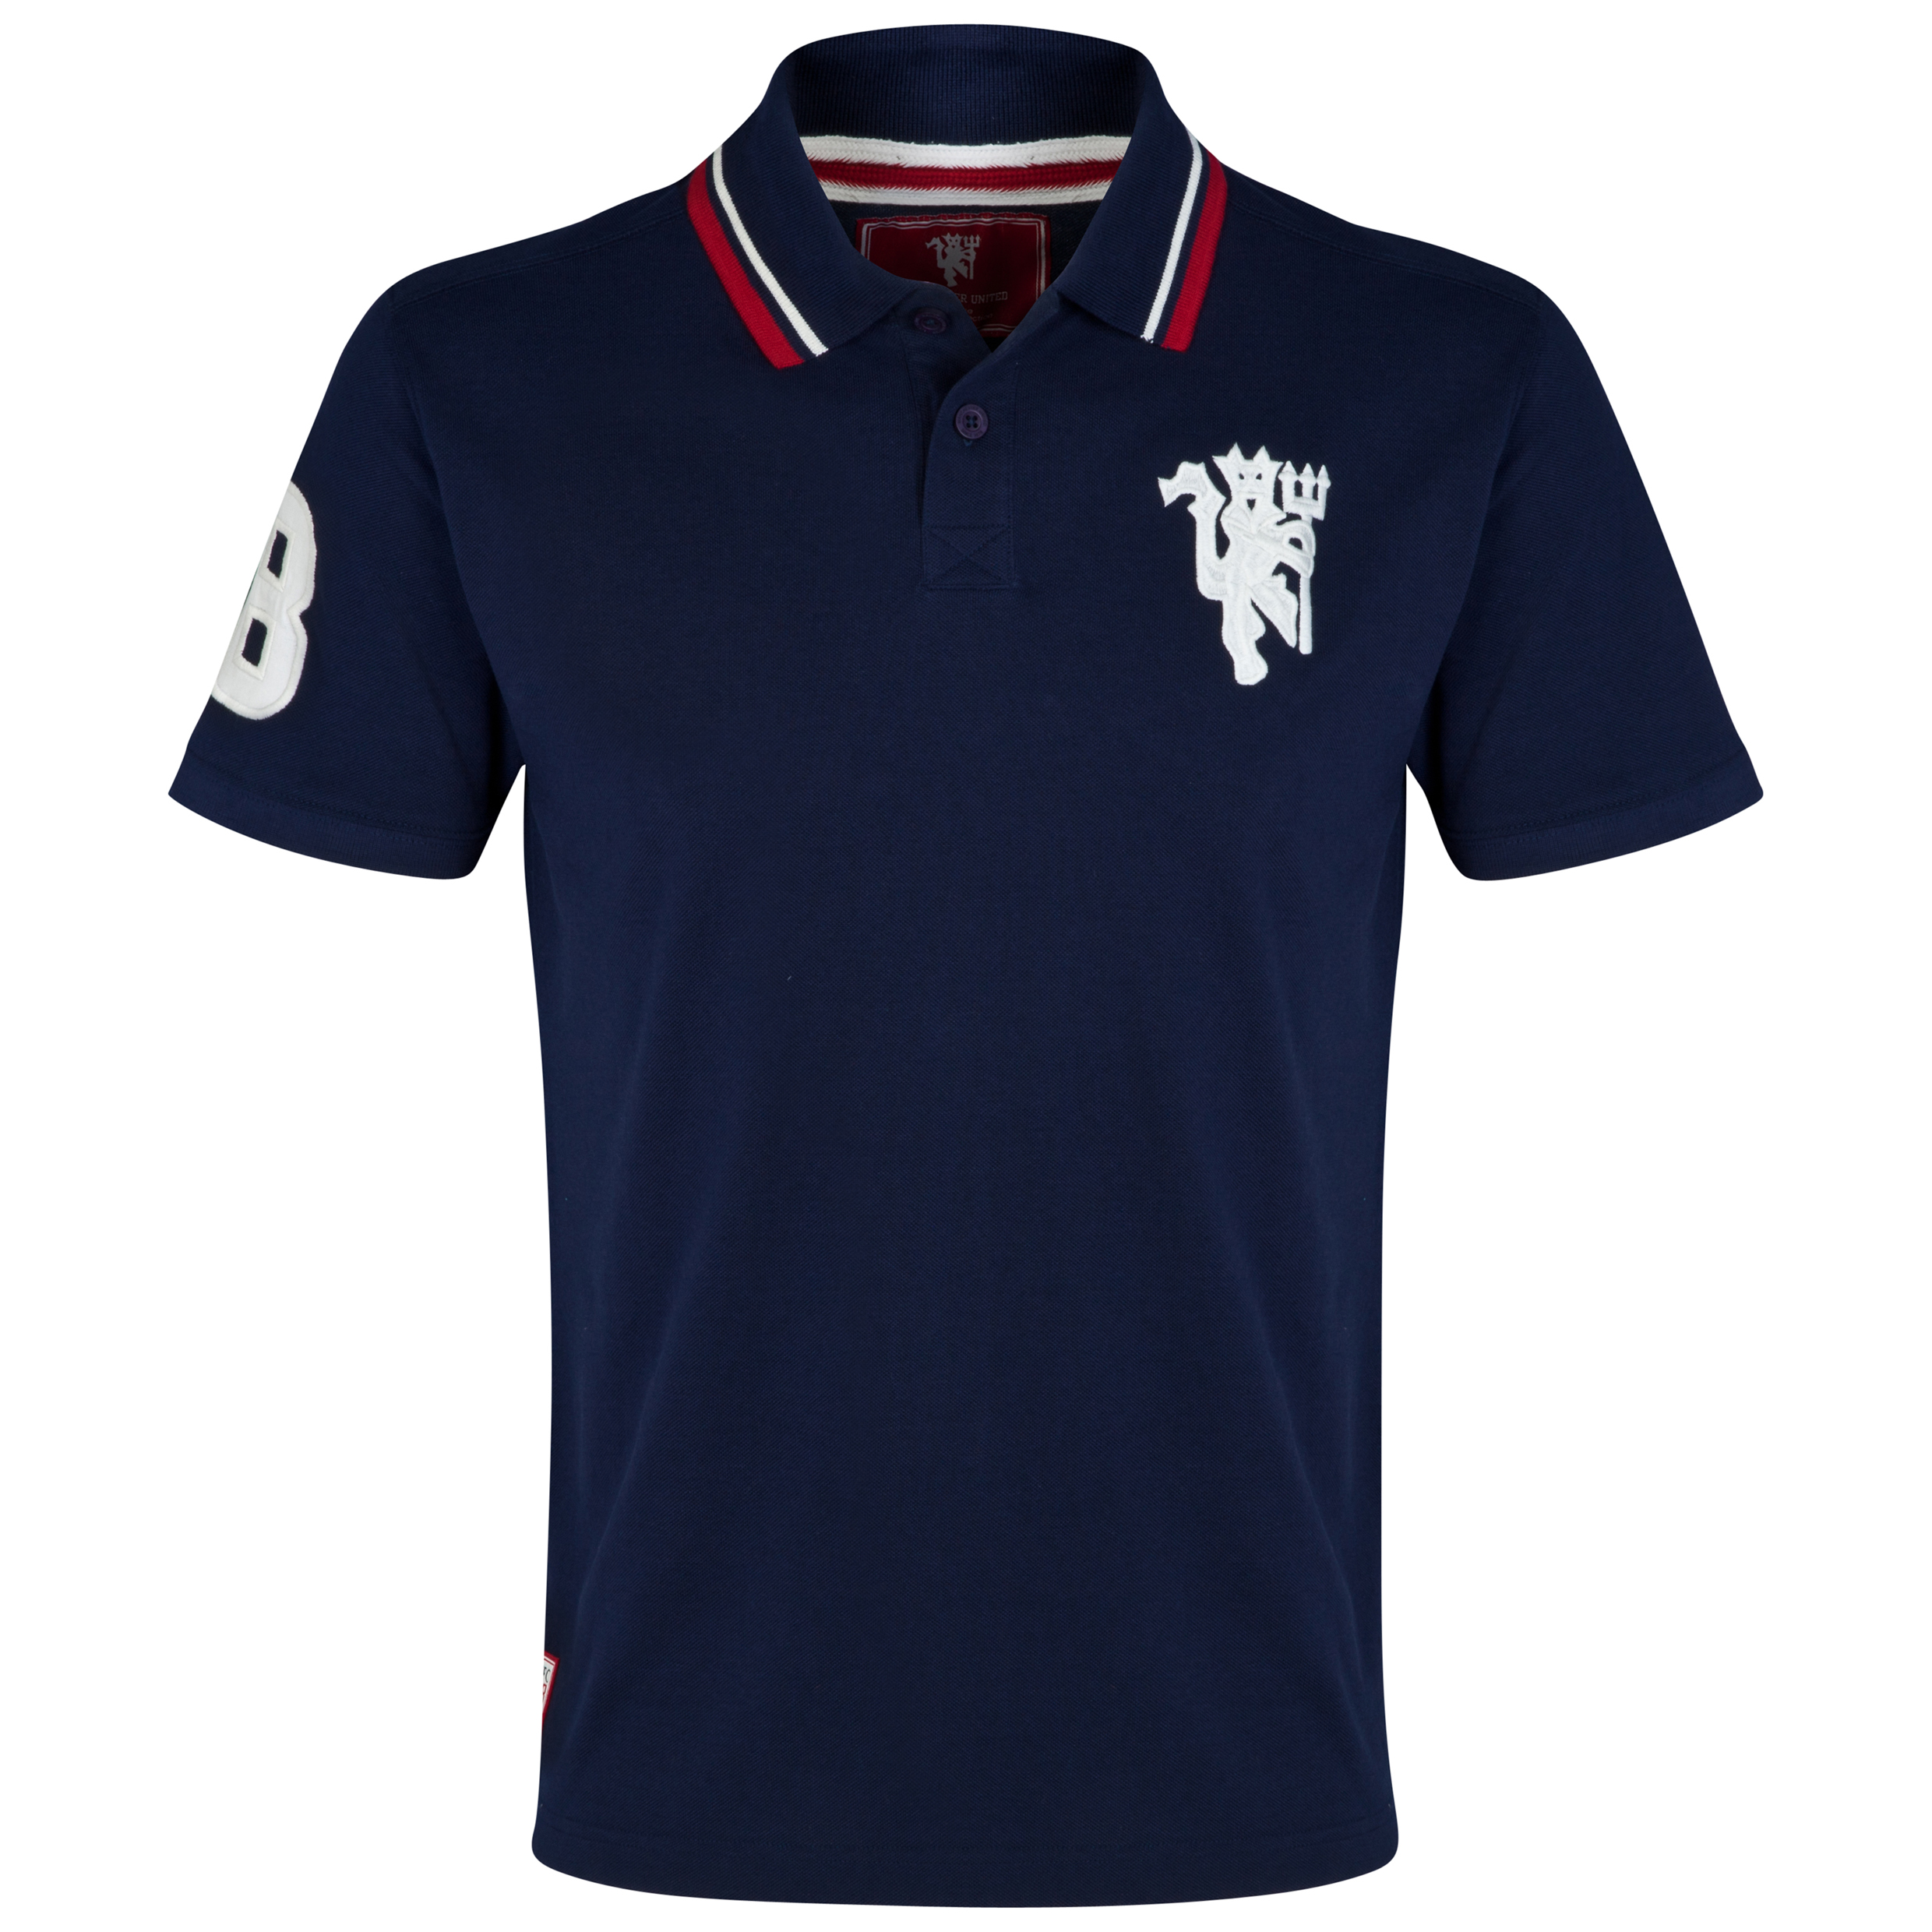 Manchester United Heritage Devil Polo Shirt - Older Boys